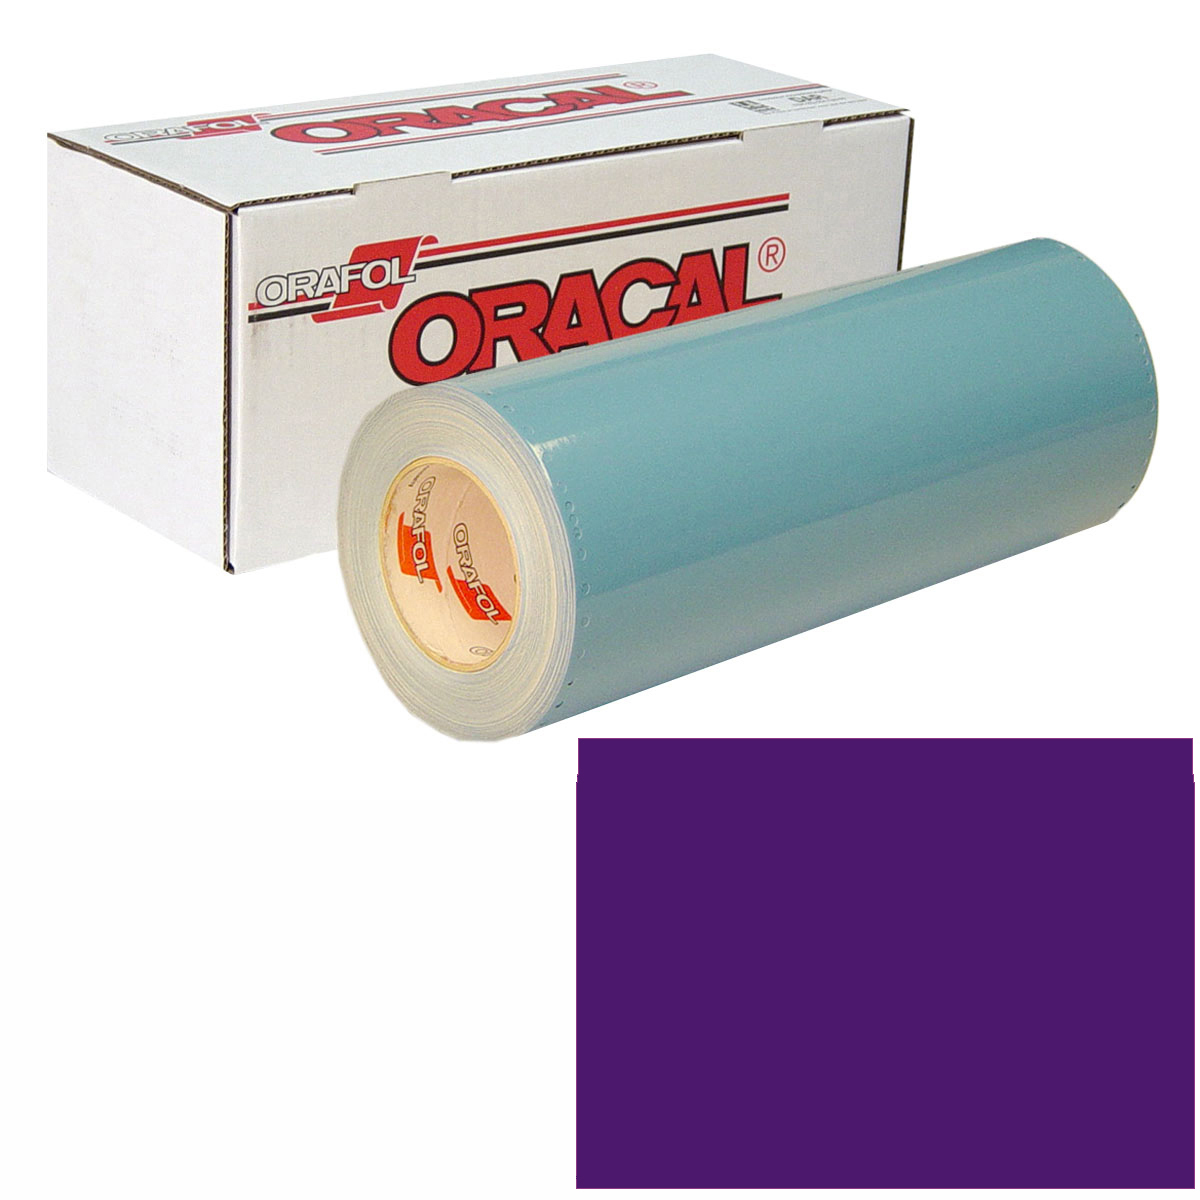 ORACAL 751 Unp 48in X 10yd 040 Violet